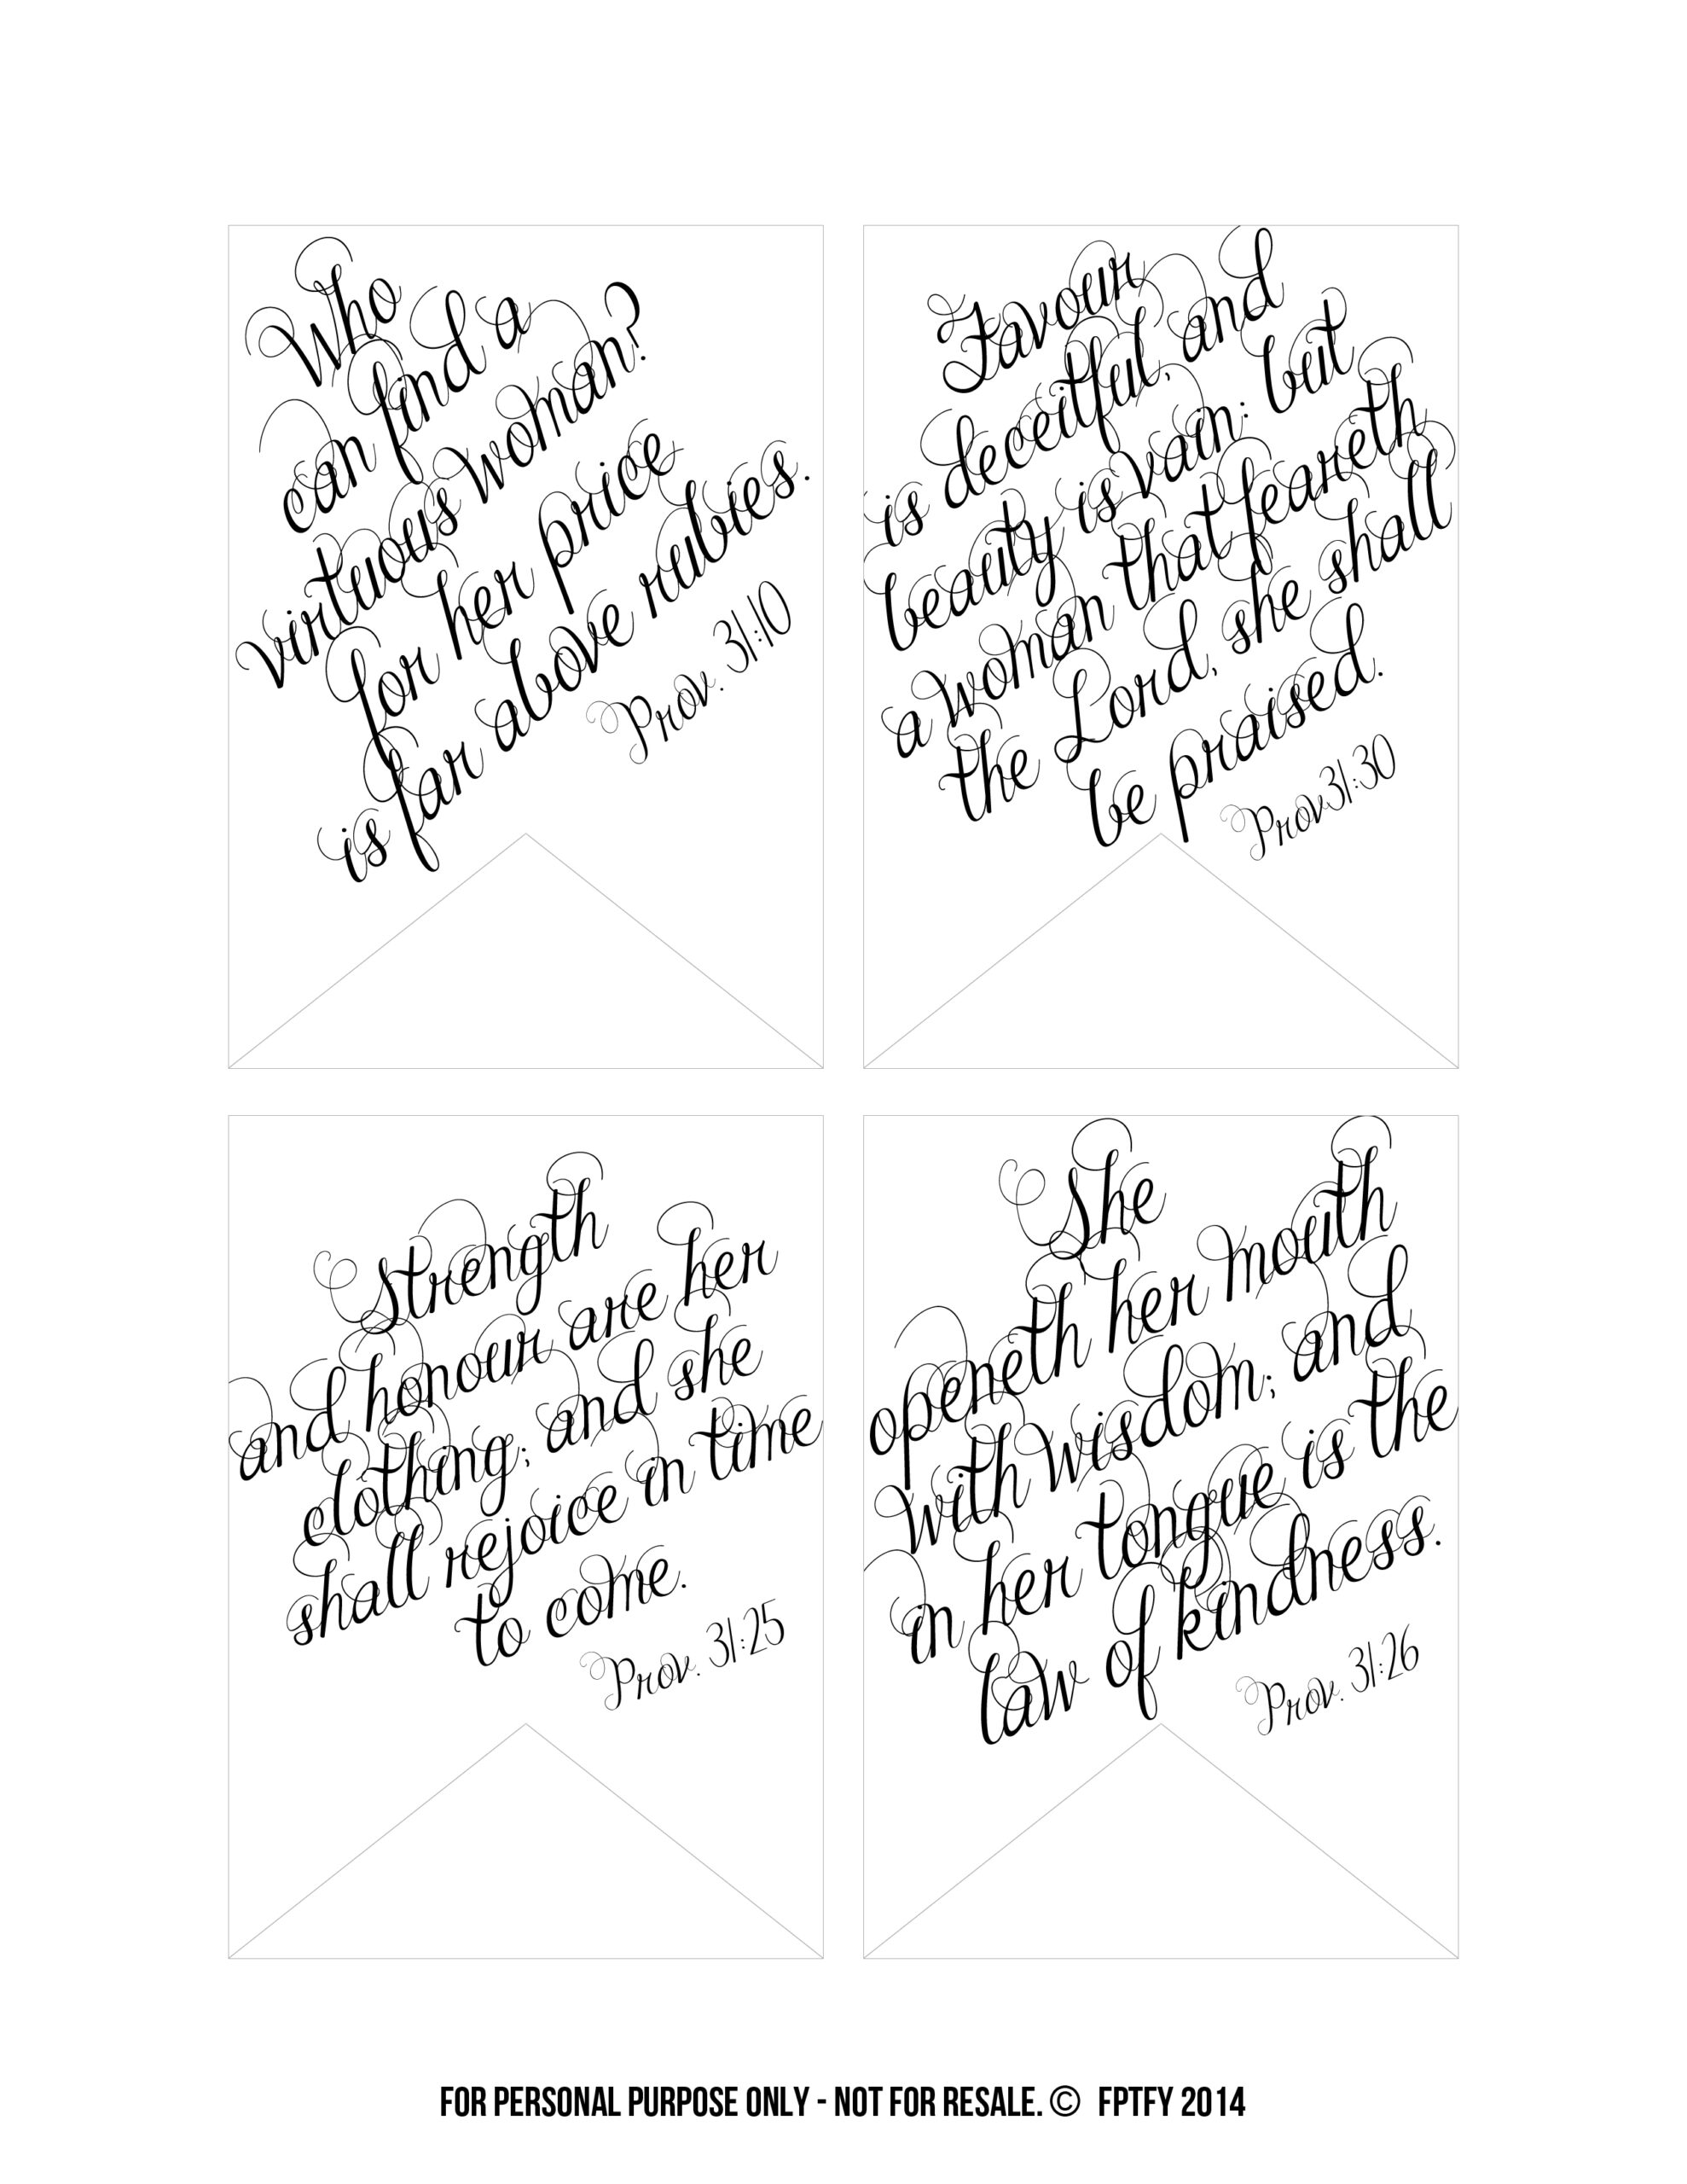 graphic relating to Free Printable Bible Verses identify Printable Bible Verses: Proverbs 31 Tags - Cost-free Rather